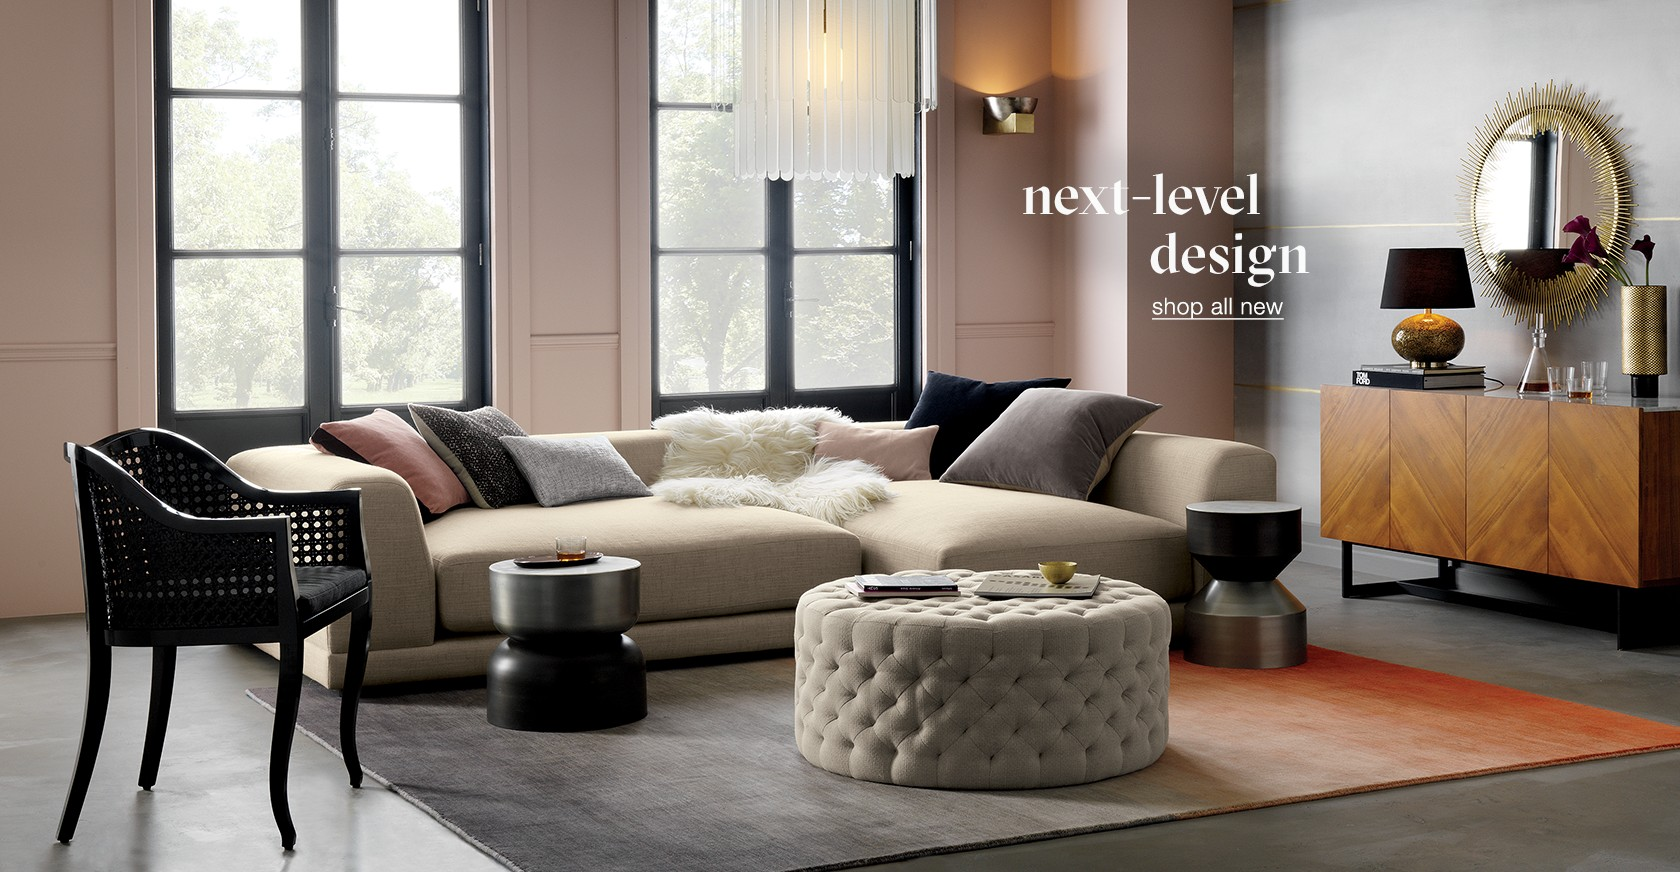 next-level design. shop all new